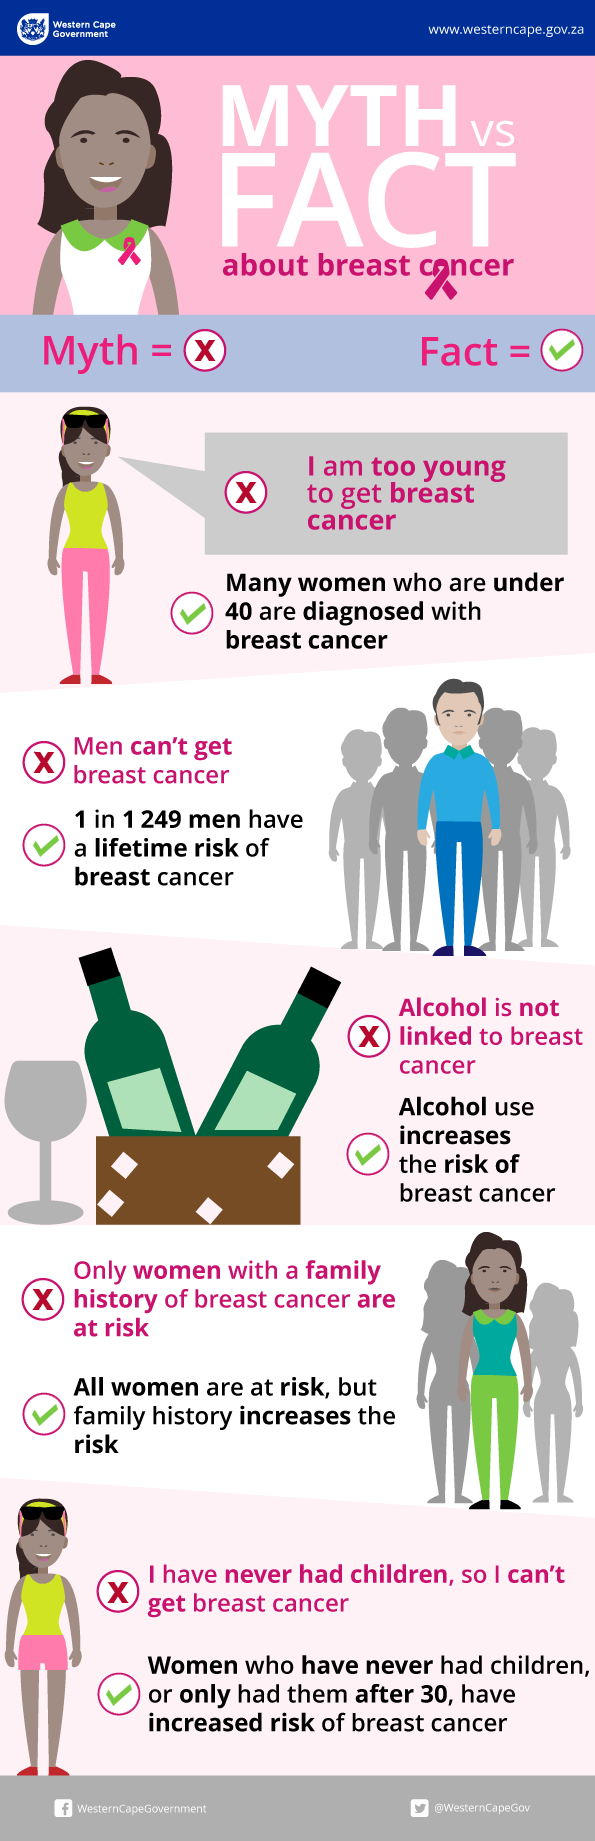 breast cancer myths versus facts infographic